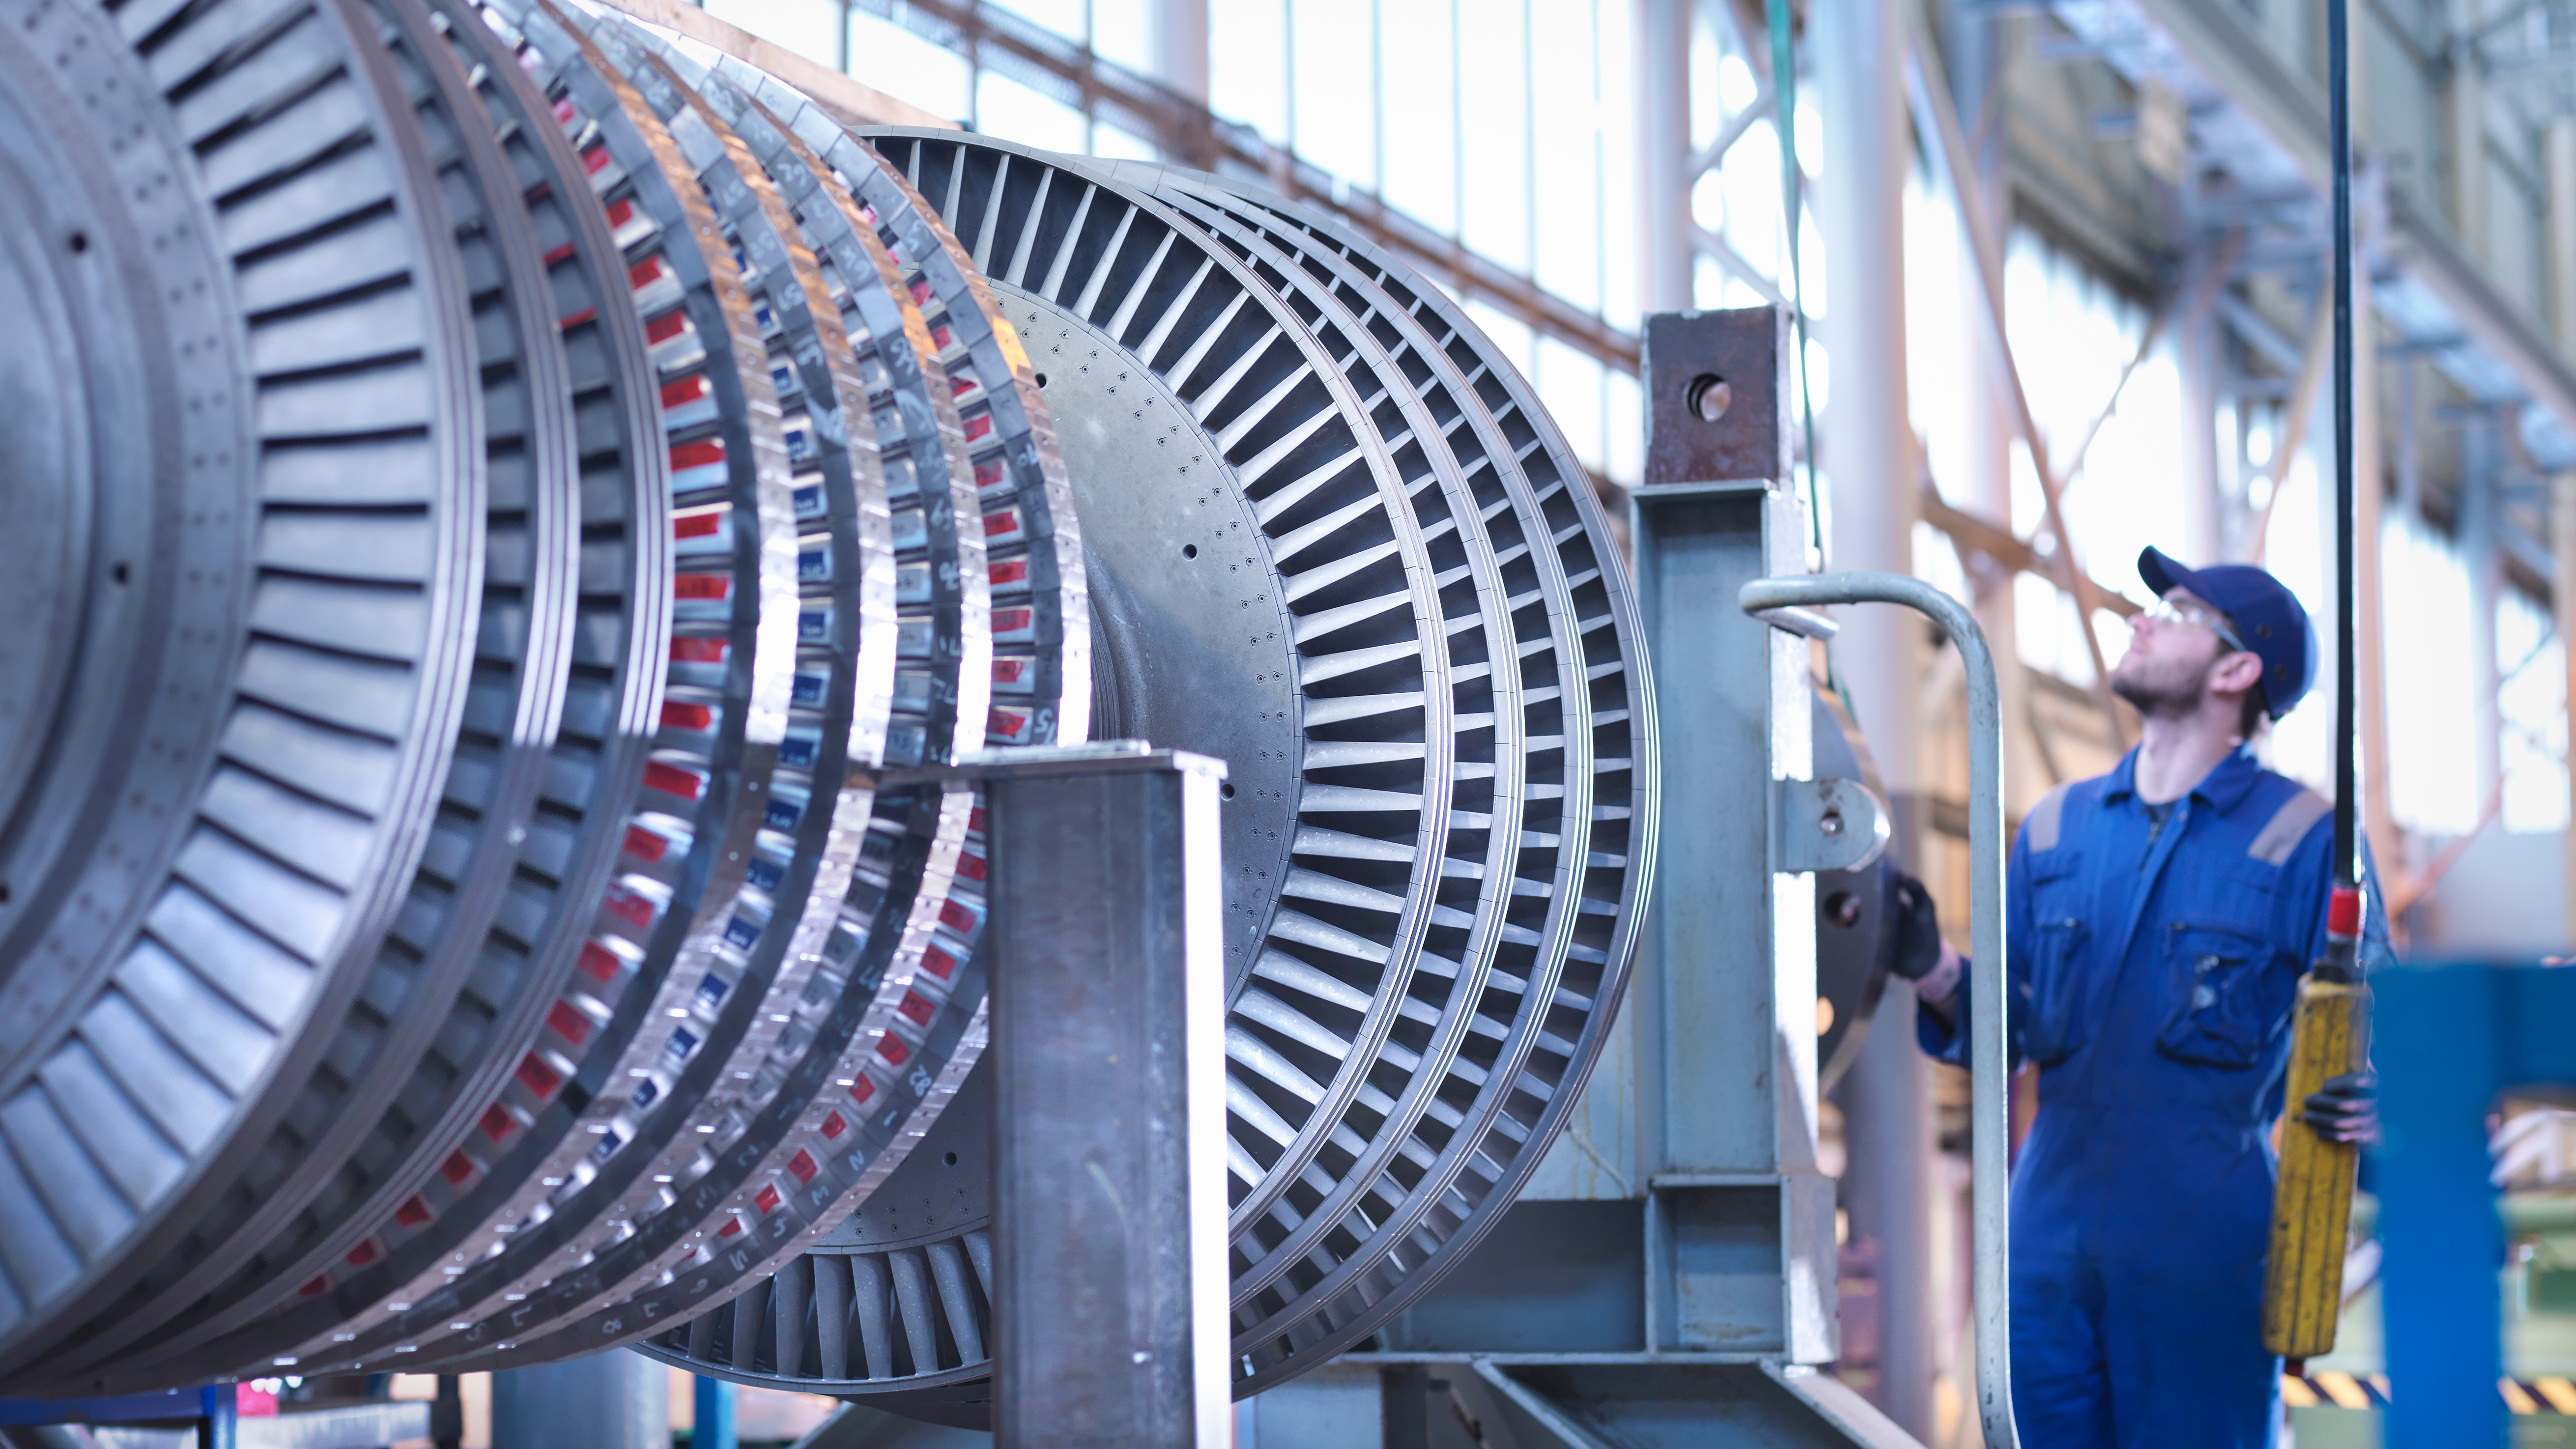 High pressure steam turbine